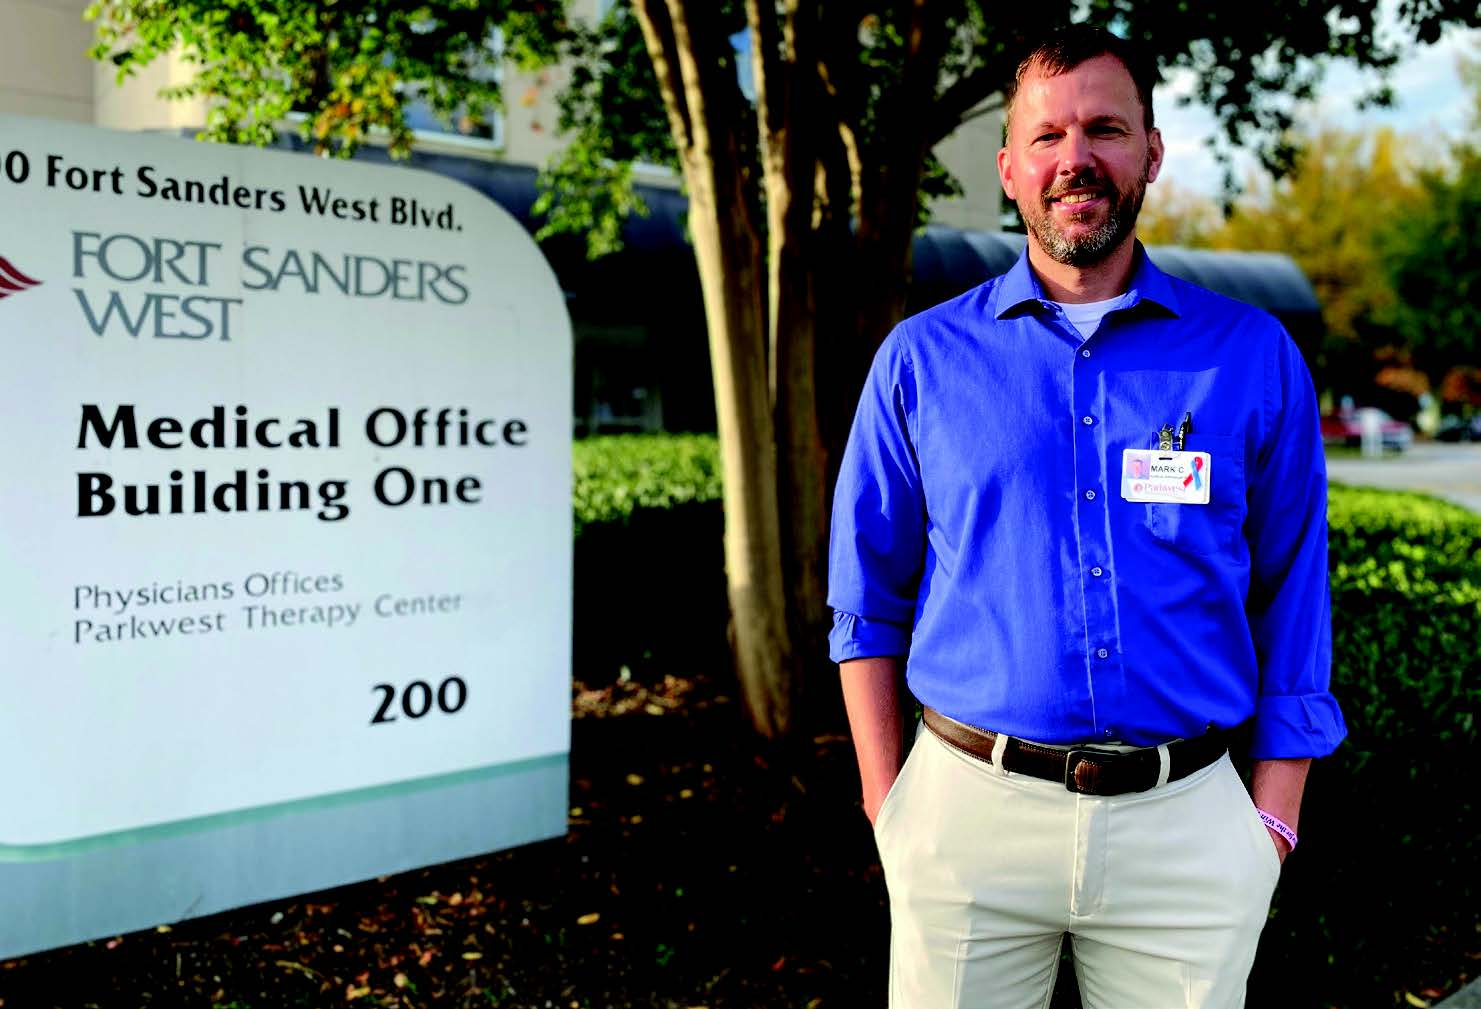 An Unusual Gift: Physical Therapist who survived lung cancer is inspired by helping others